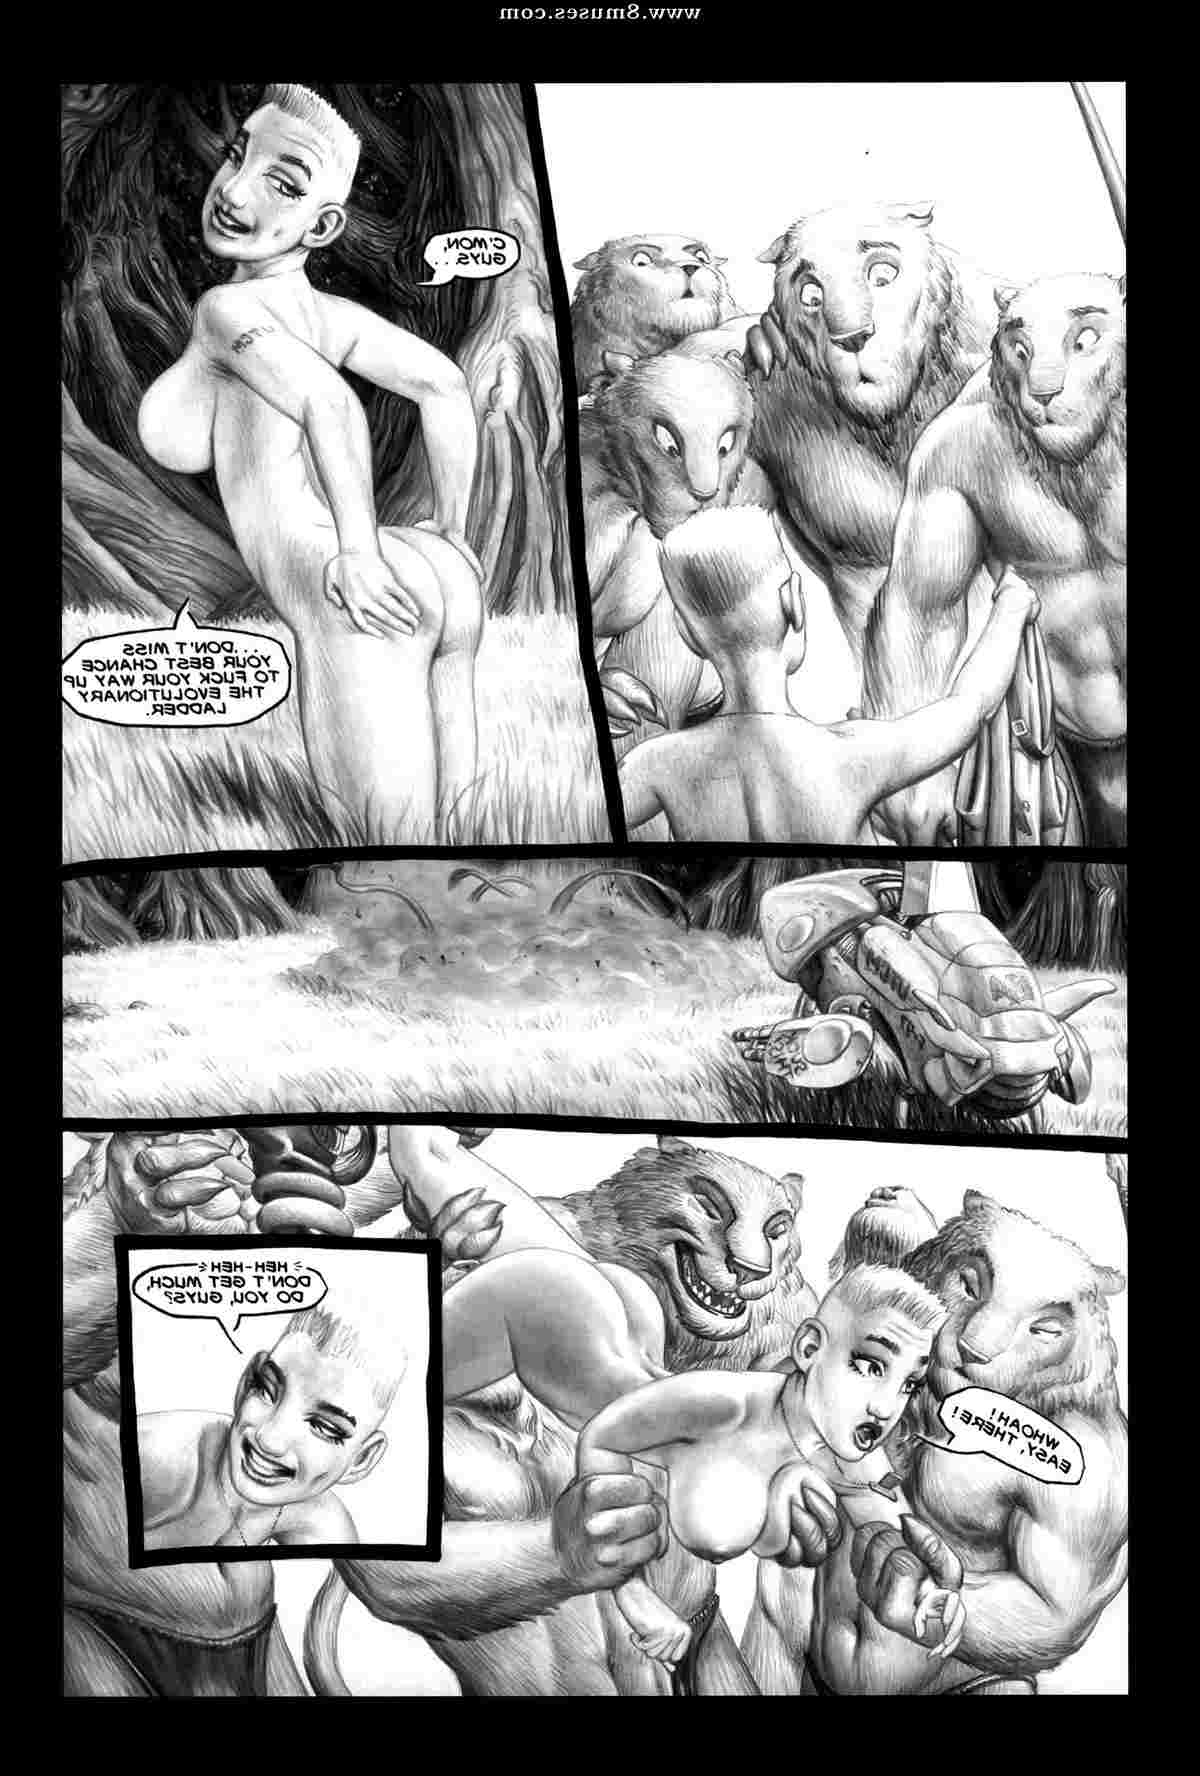 Amerotica-Comics/Short-Strokes Short_Strokes__8muses_-_Sex_and_Porn_Comics_15.jpg